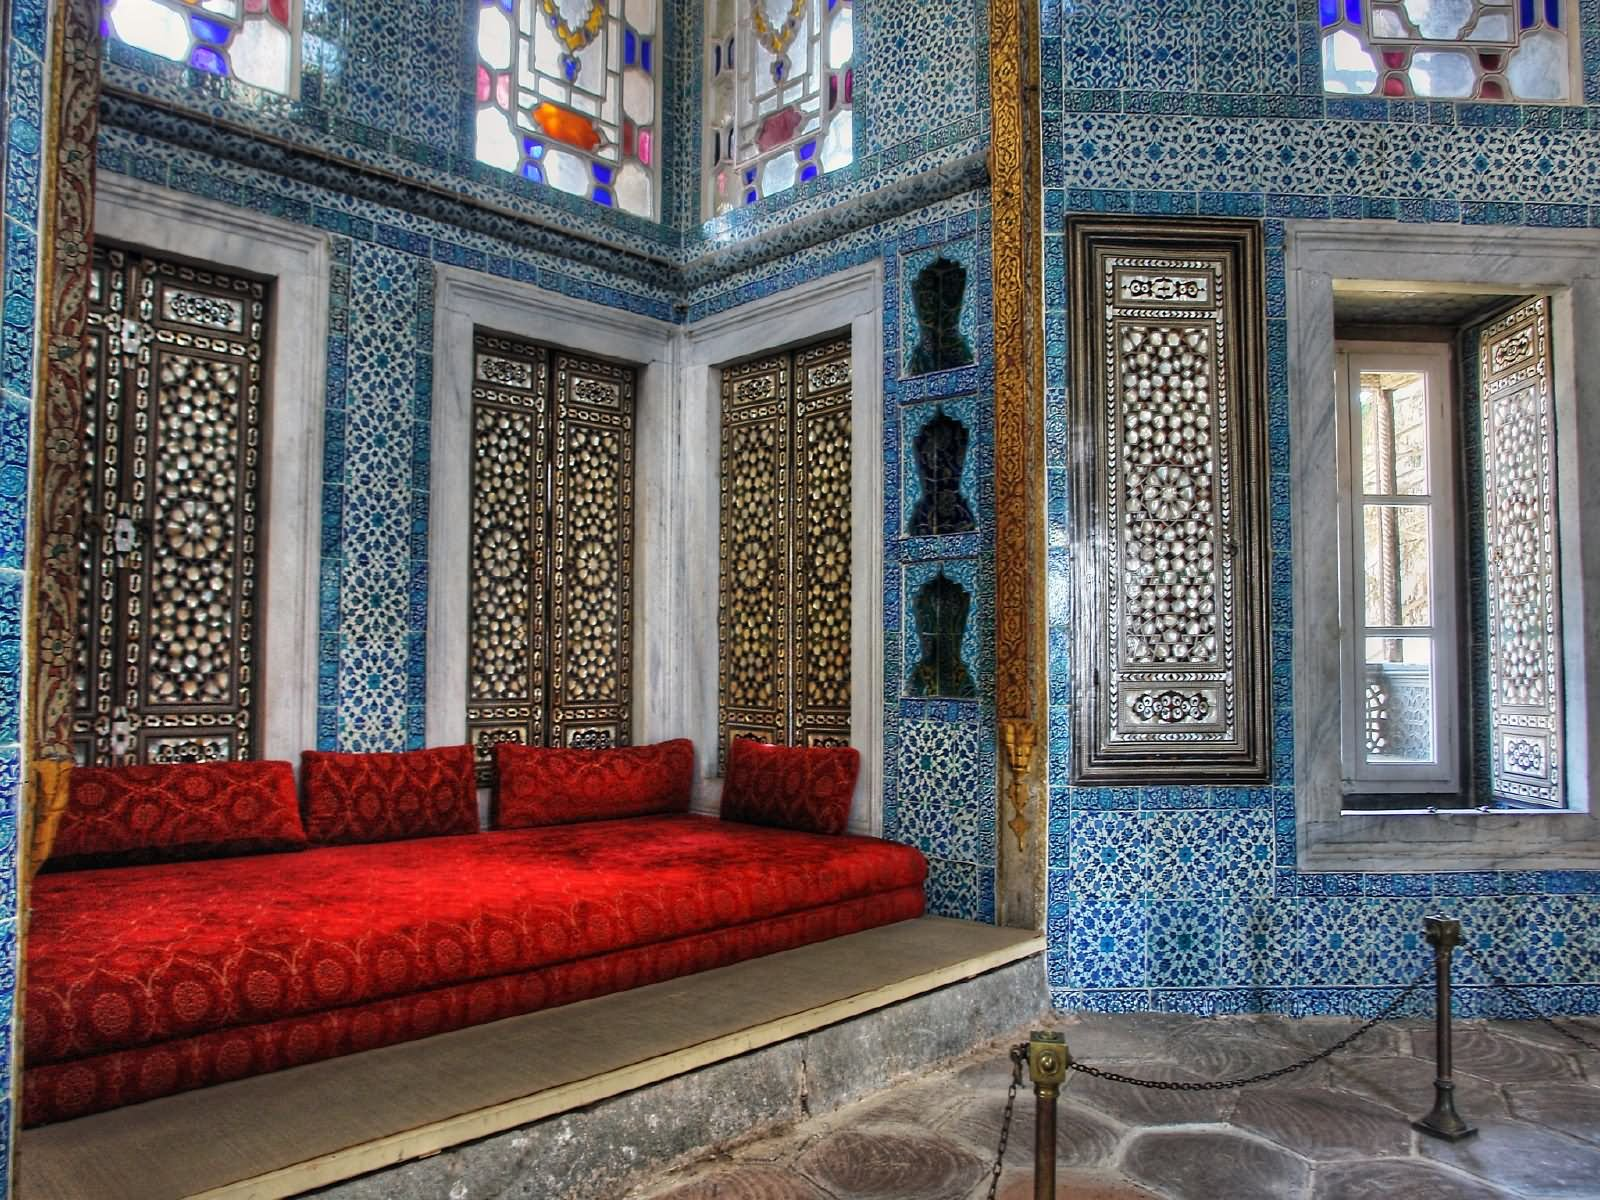 40+ Incredible Inside View Pictures And Images Of Topkapi ...